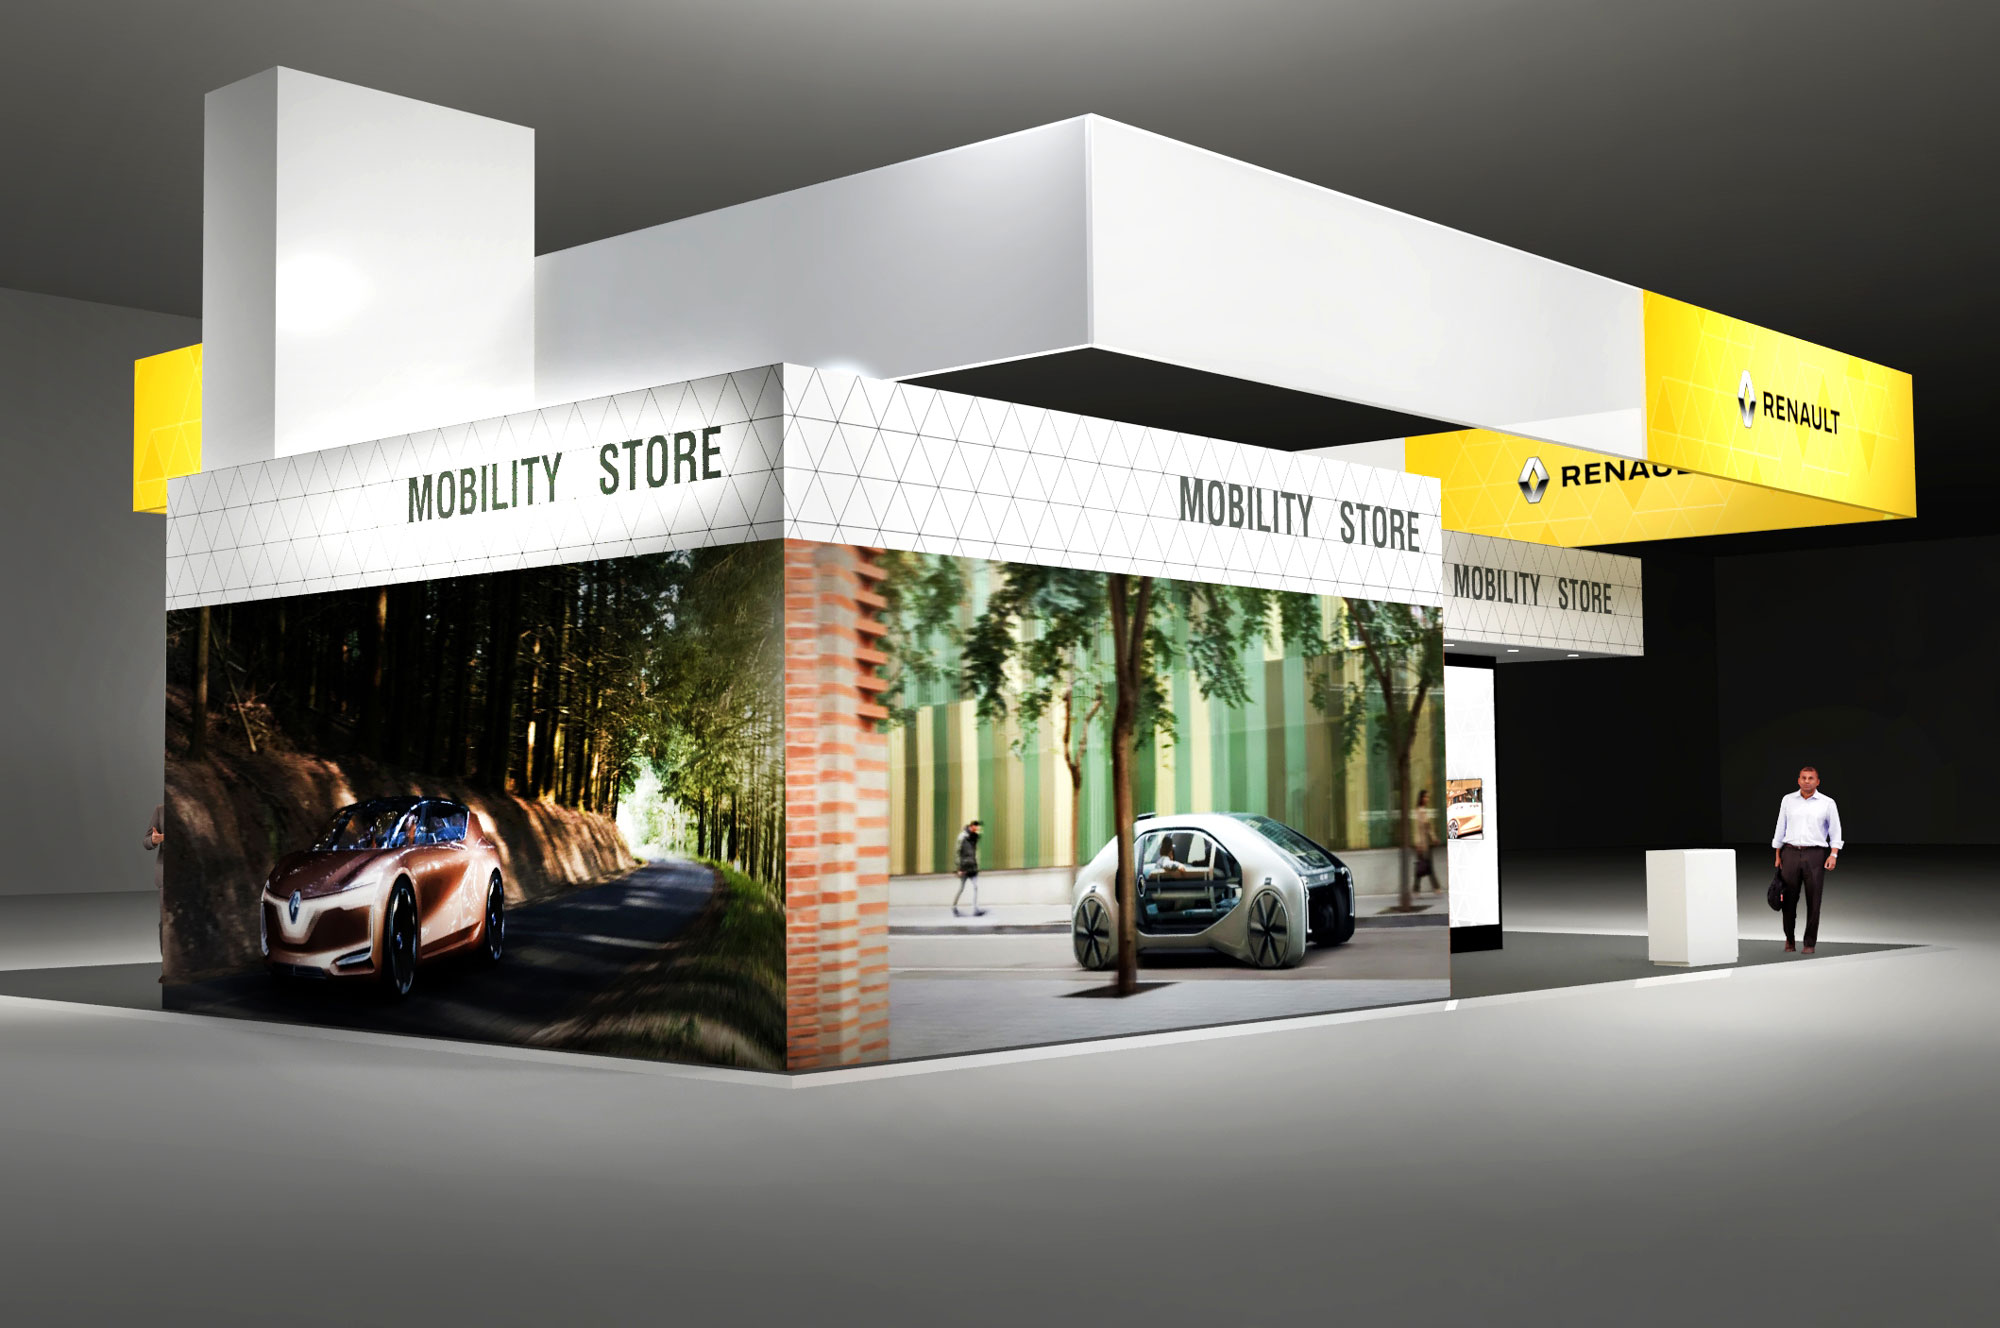 Event Renault Mobility Stand 2